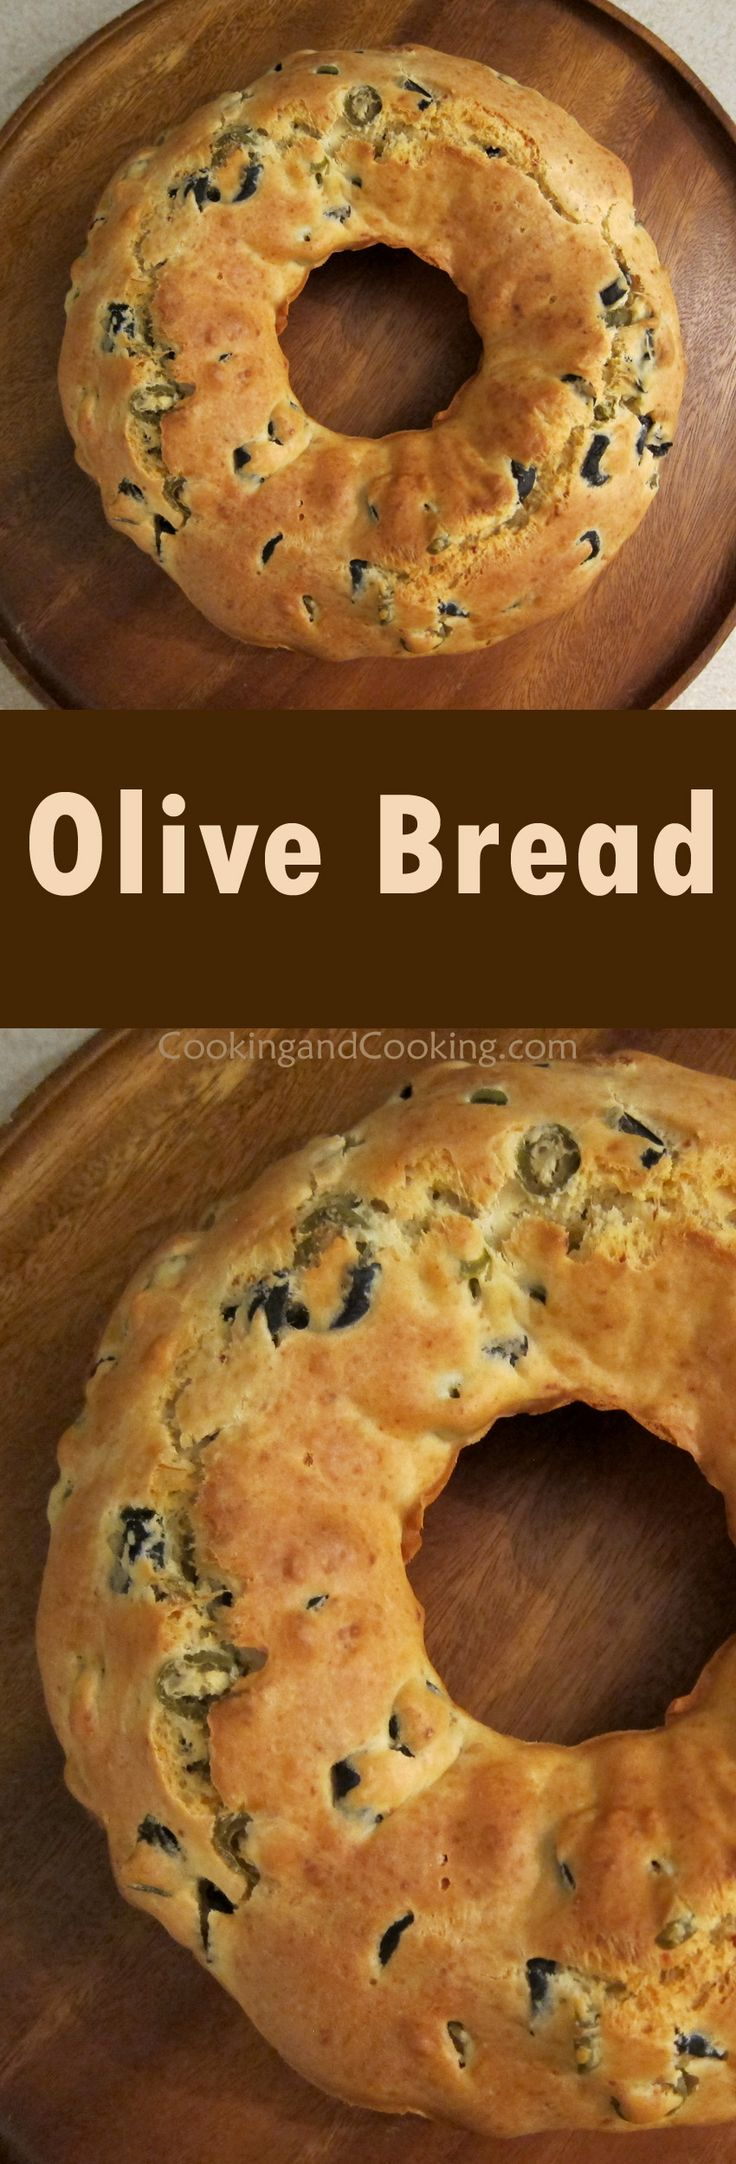 Olive Bread Recipe                                                                                                                                                      More